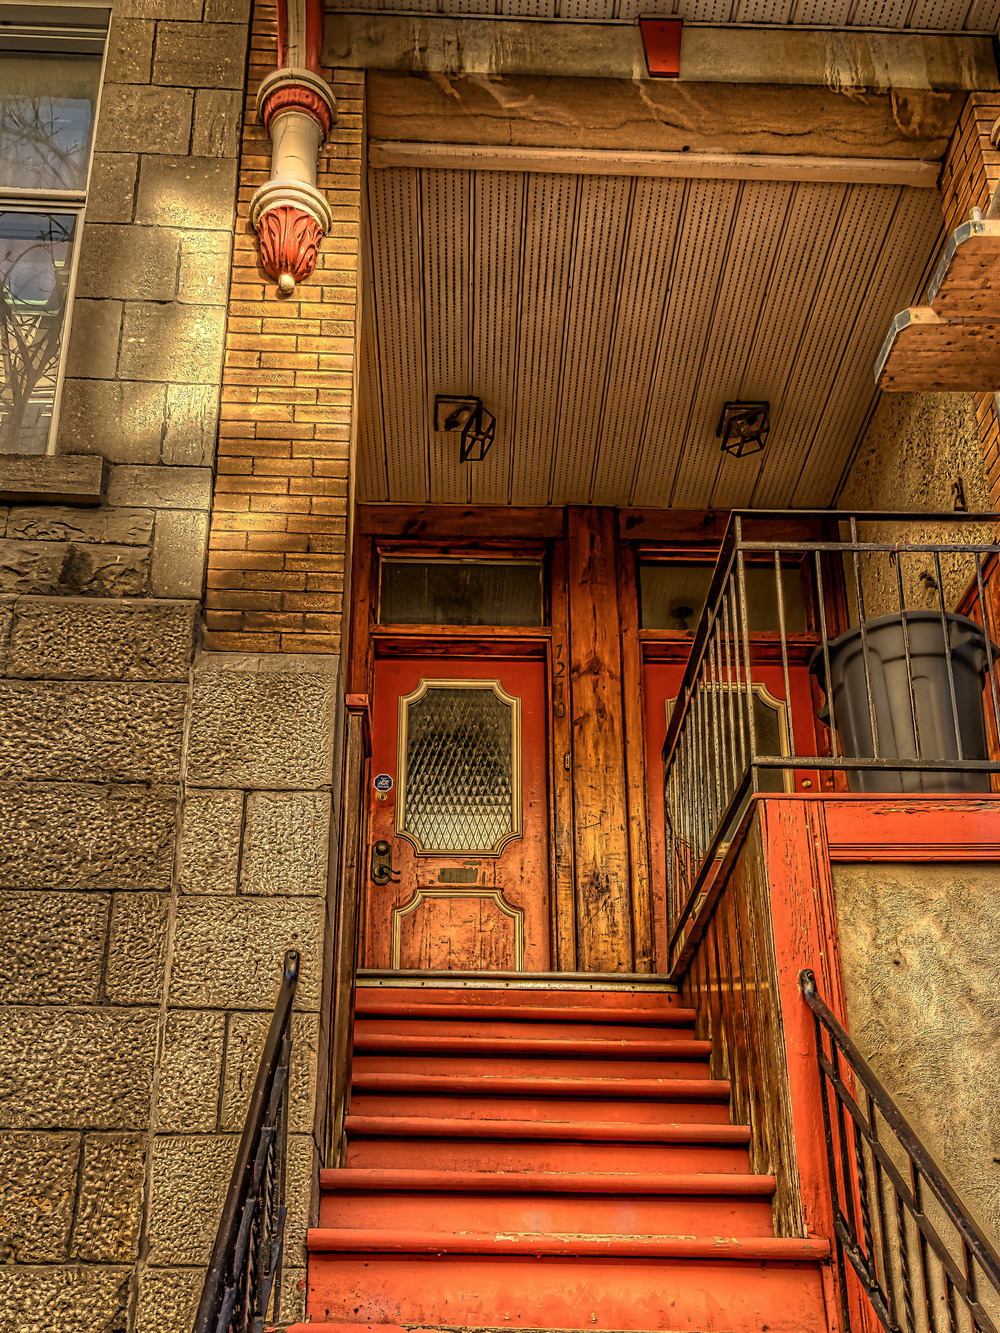 20141026_Photos Walk-Ste. Catherine E-St. Hubert_IMG_9734_5_6tonemapped-M.jpg